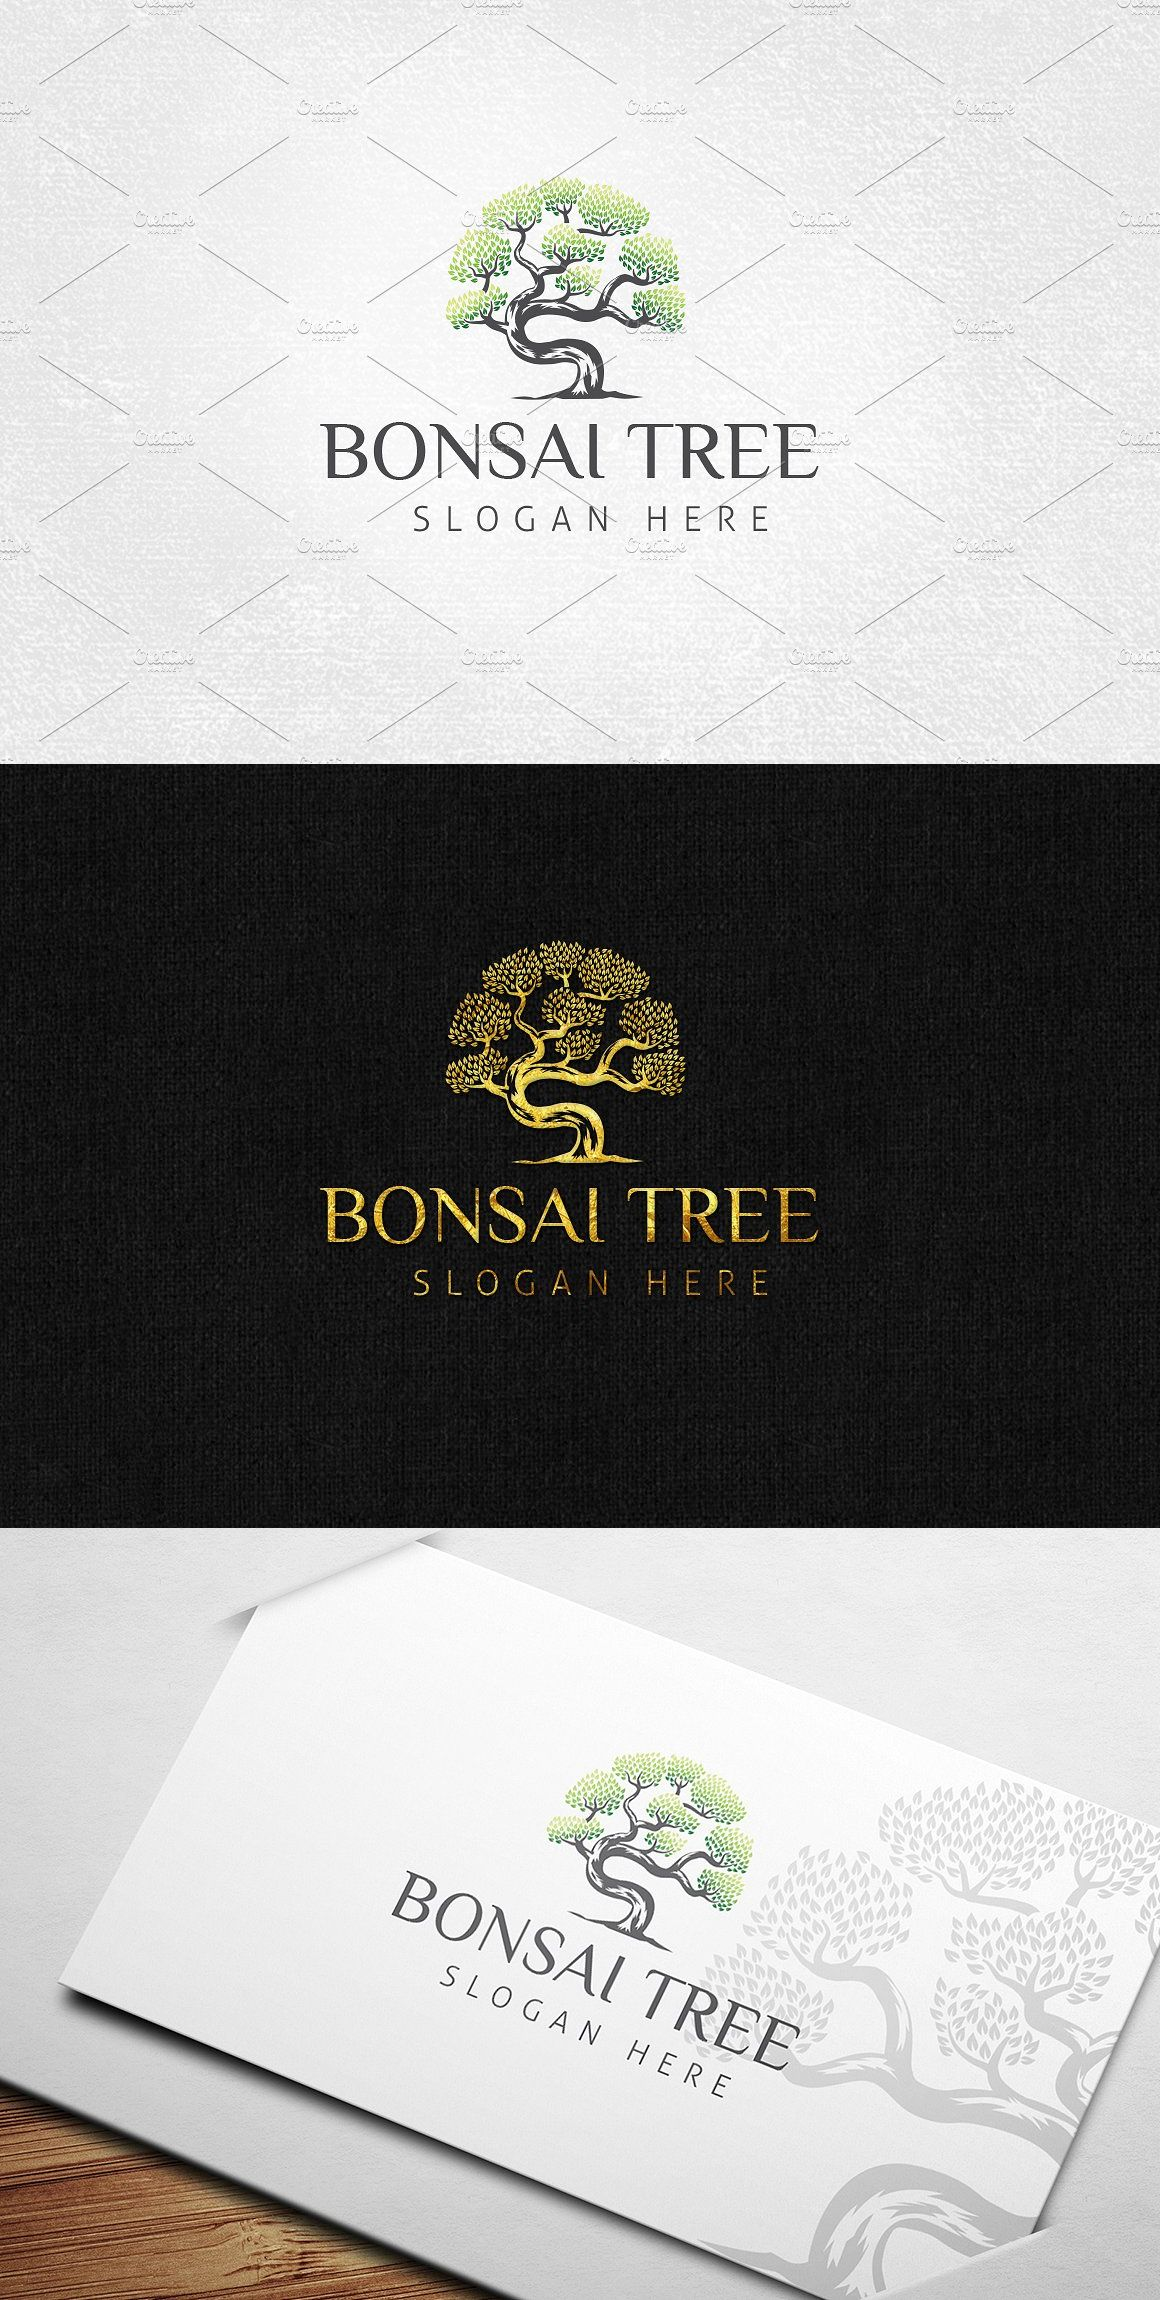 Bonsai Tree Logo Template Tree Logos Bonsai Tree Tree Drawing